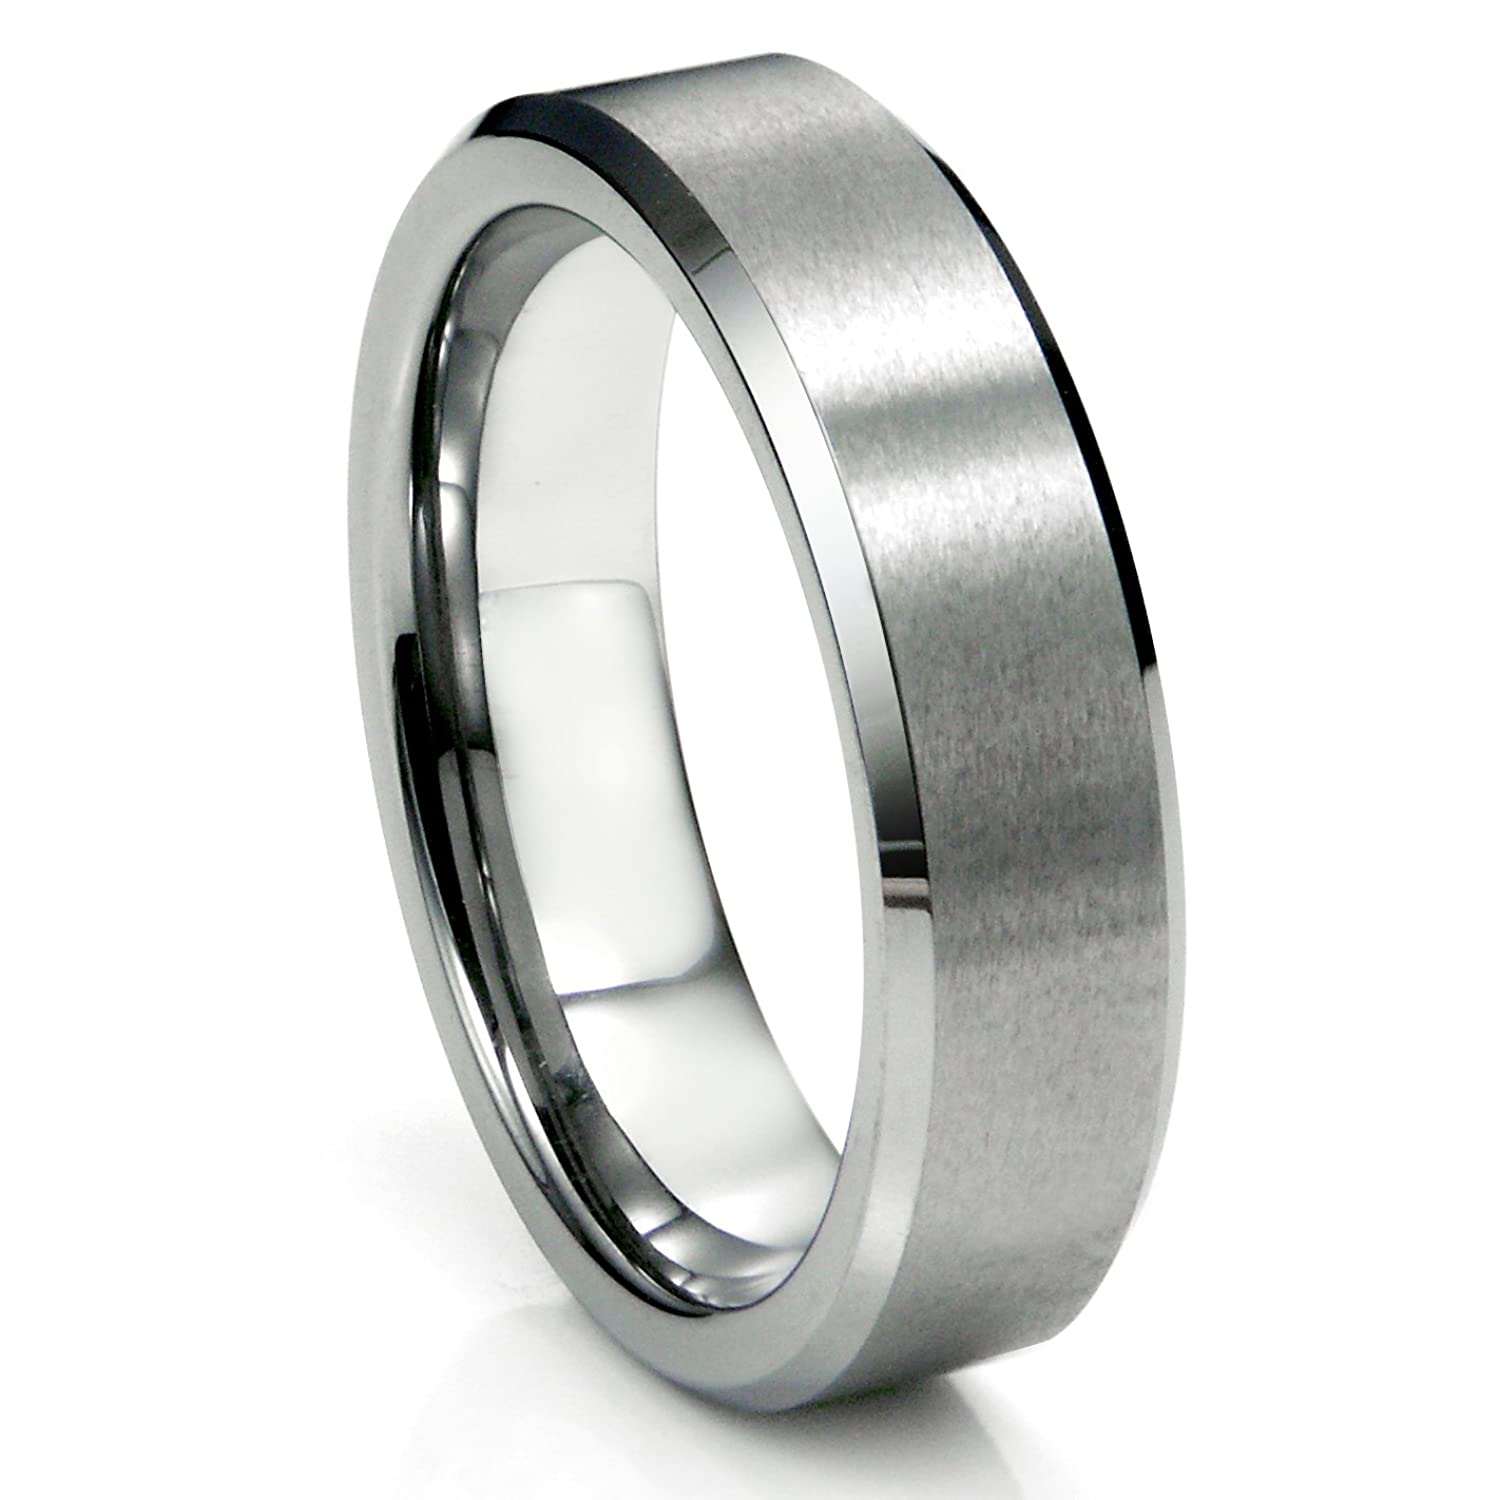 6MM Tungsten Satin Mens Wedding Band Ring Size 5 16